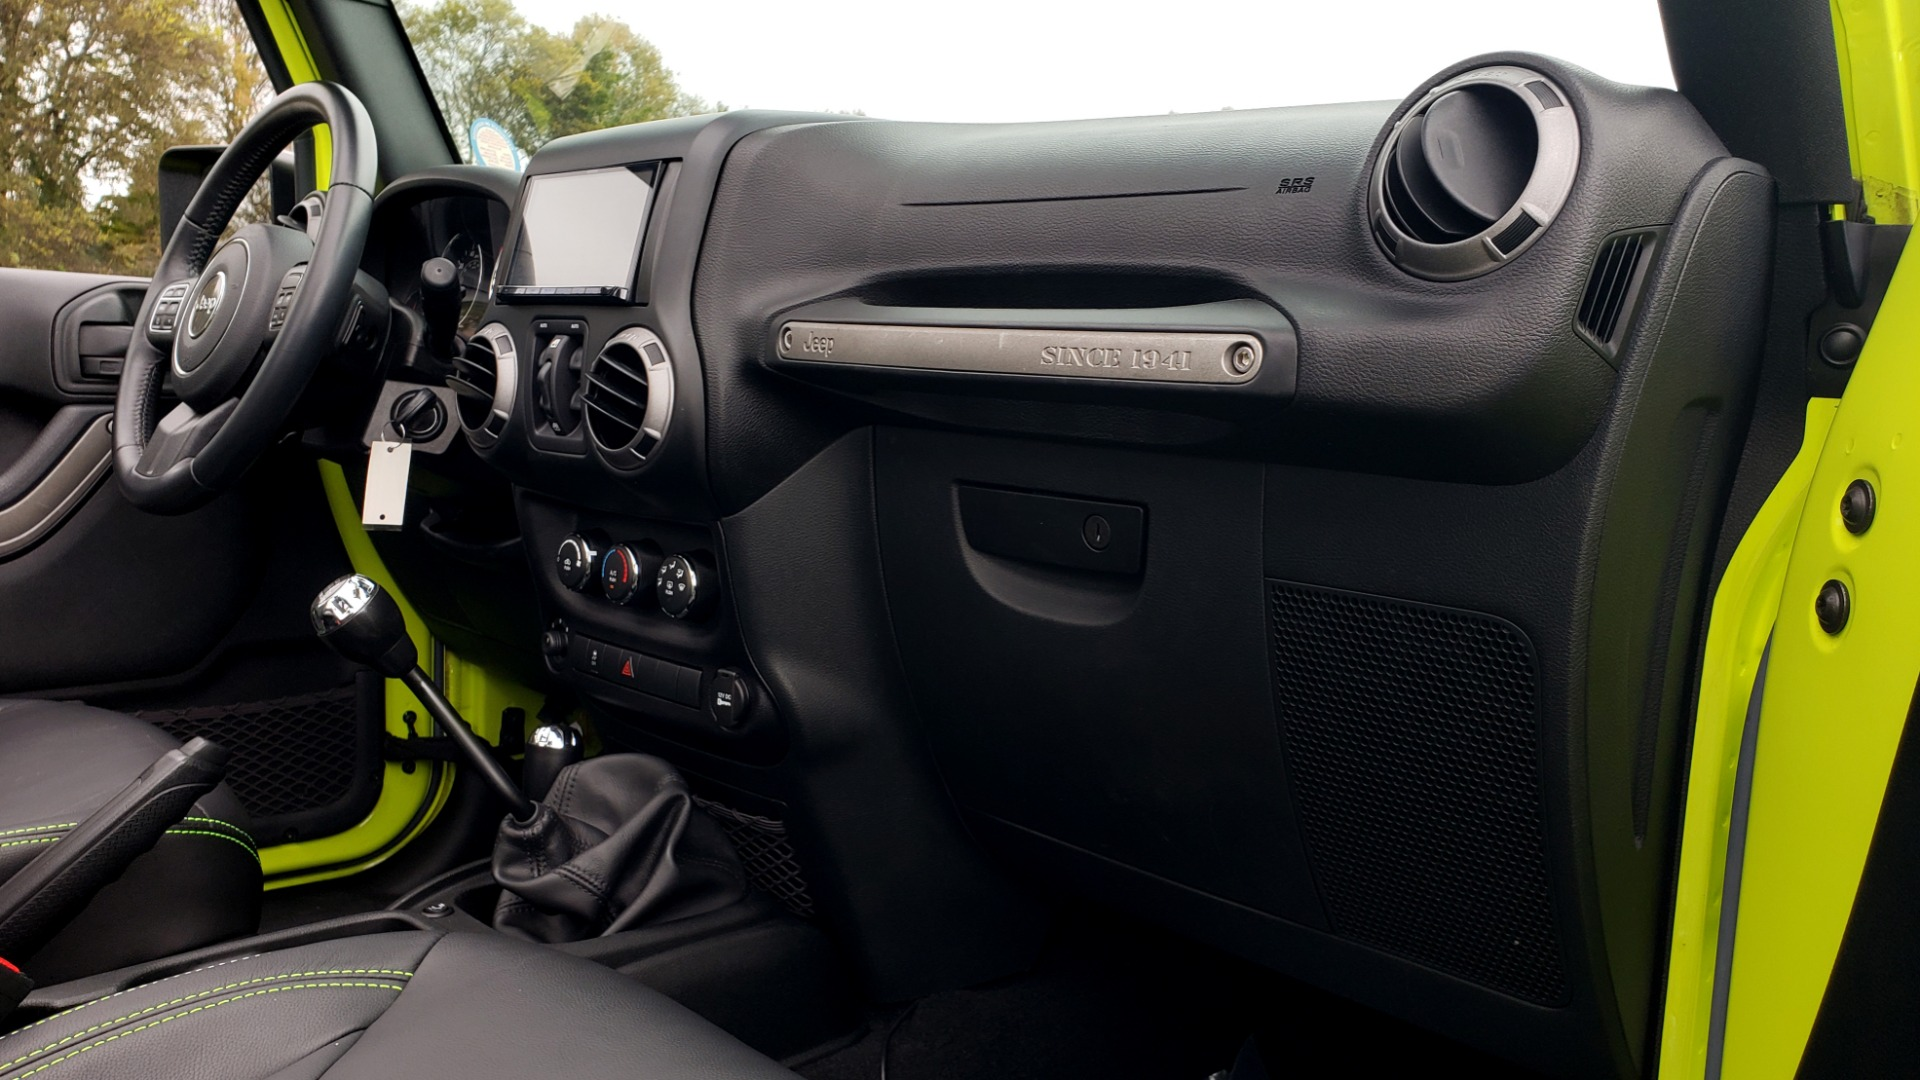 Used 2016 Jeep WRANGLER UNLIMITED SPORT 4X4 / POWER TOP / NAV / HTD STS / REARVIEW for sale $36,999 at Formula Imports in Charlotte NC 28227 72